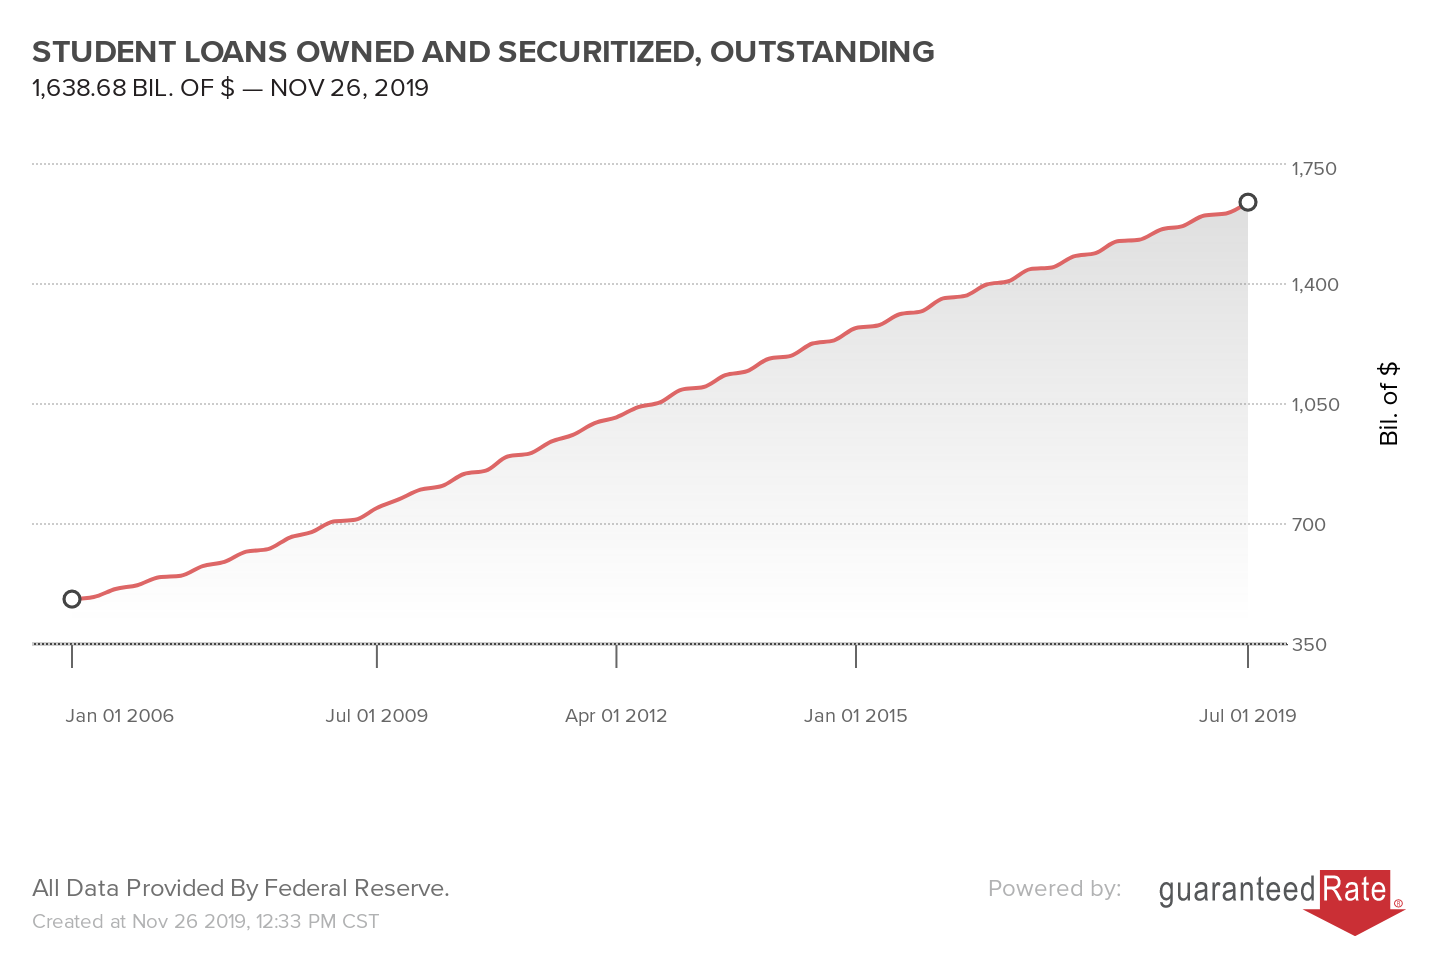 STUDENT LOANS OWNED AND SECURITIZED, OUTSTANDING